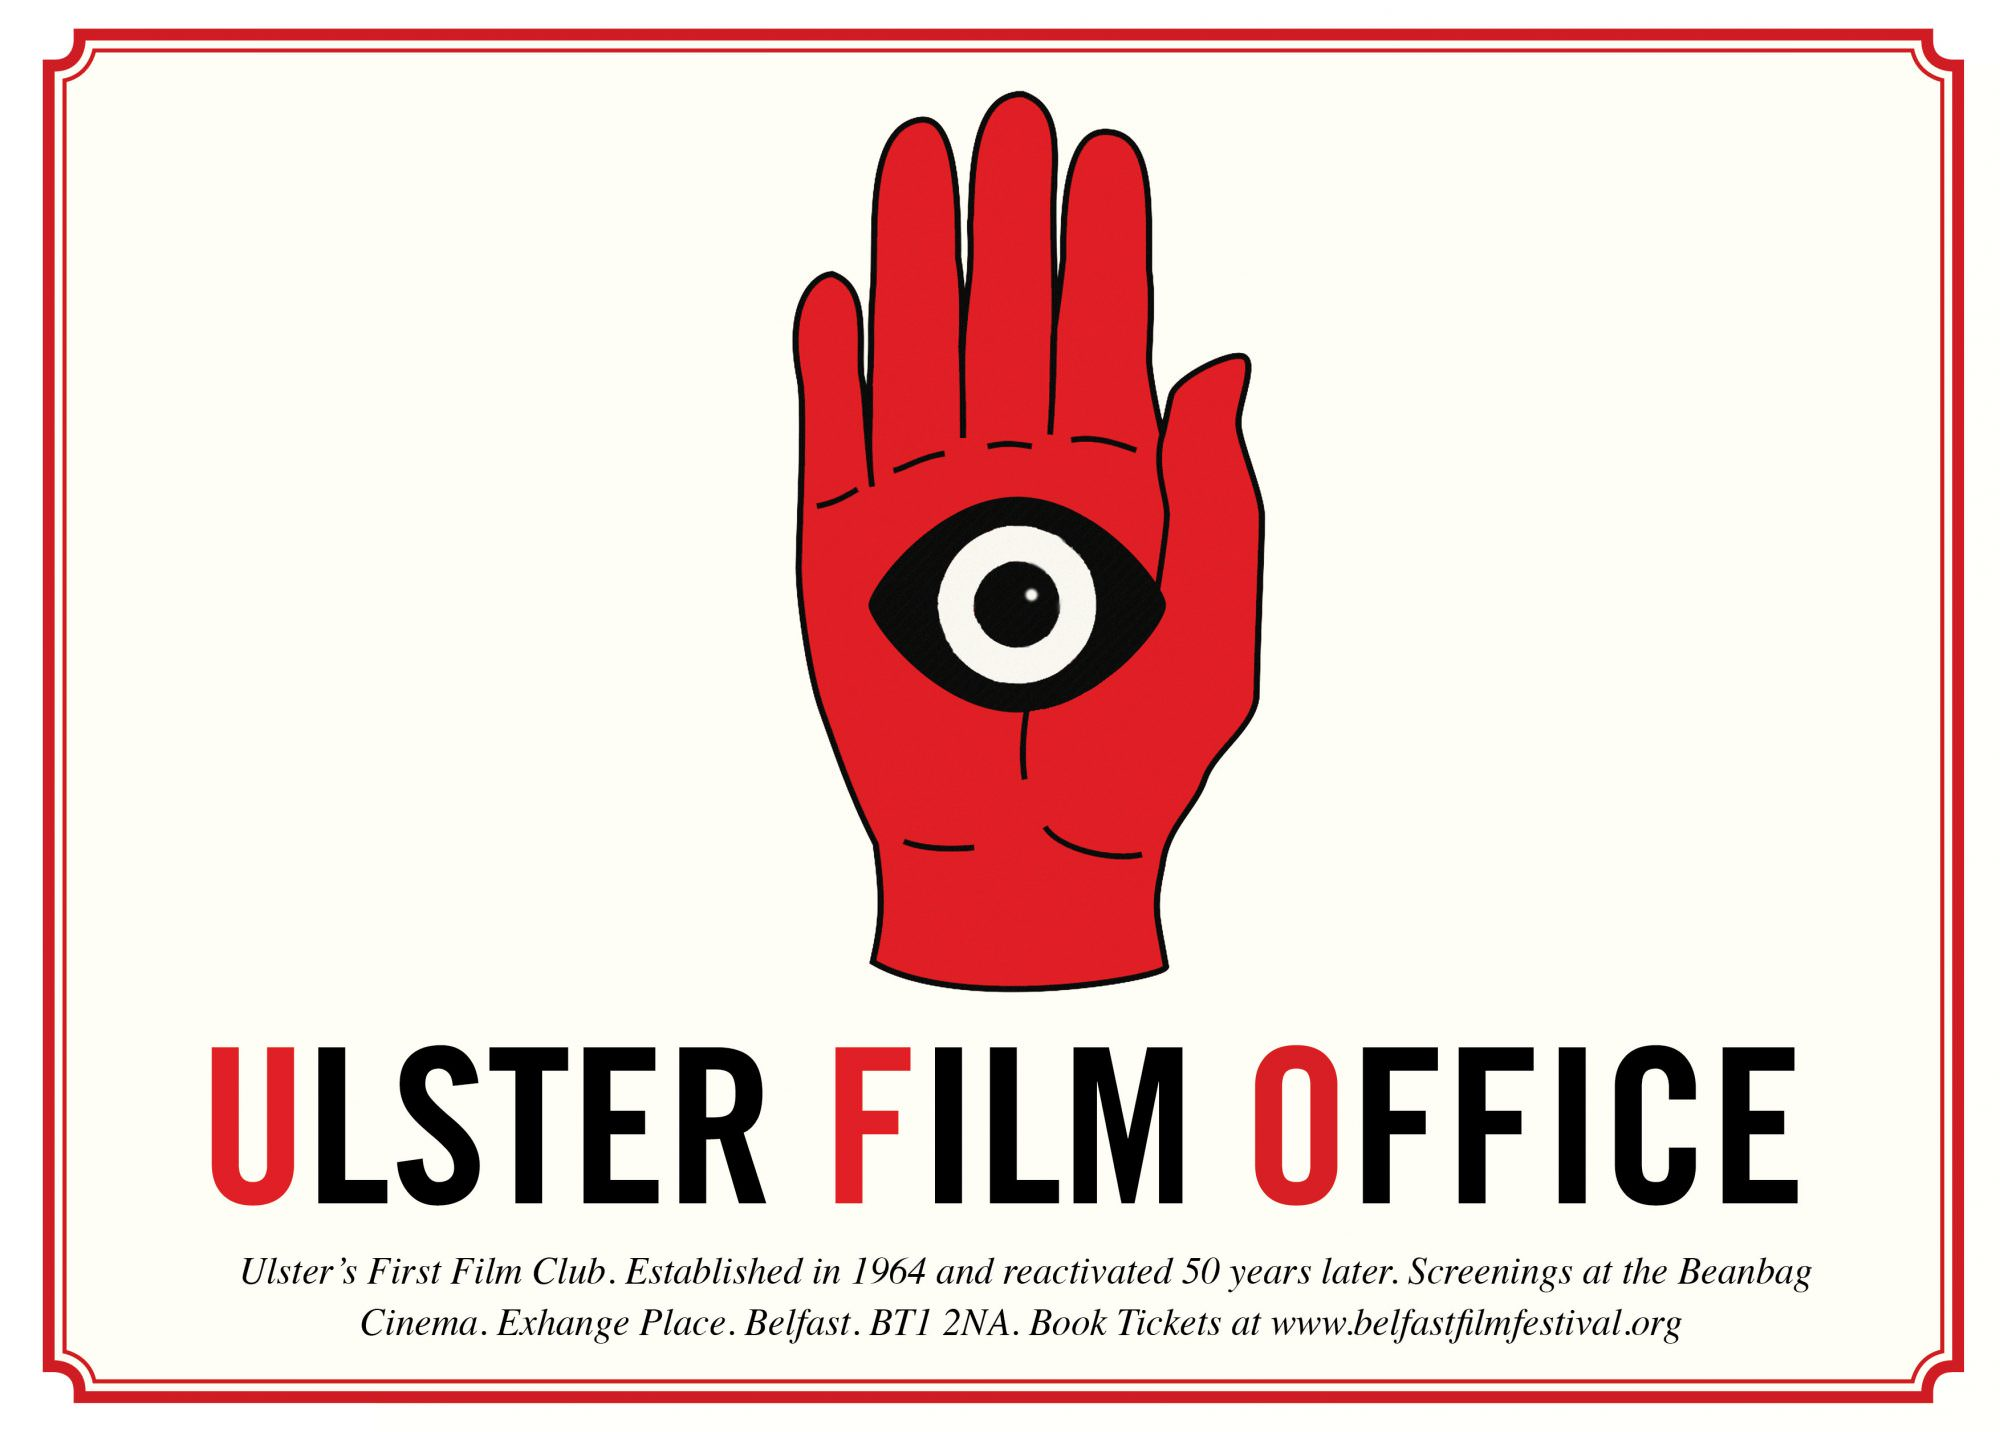 Ulster Film Office